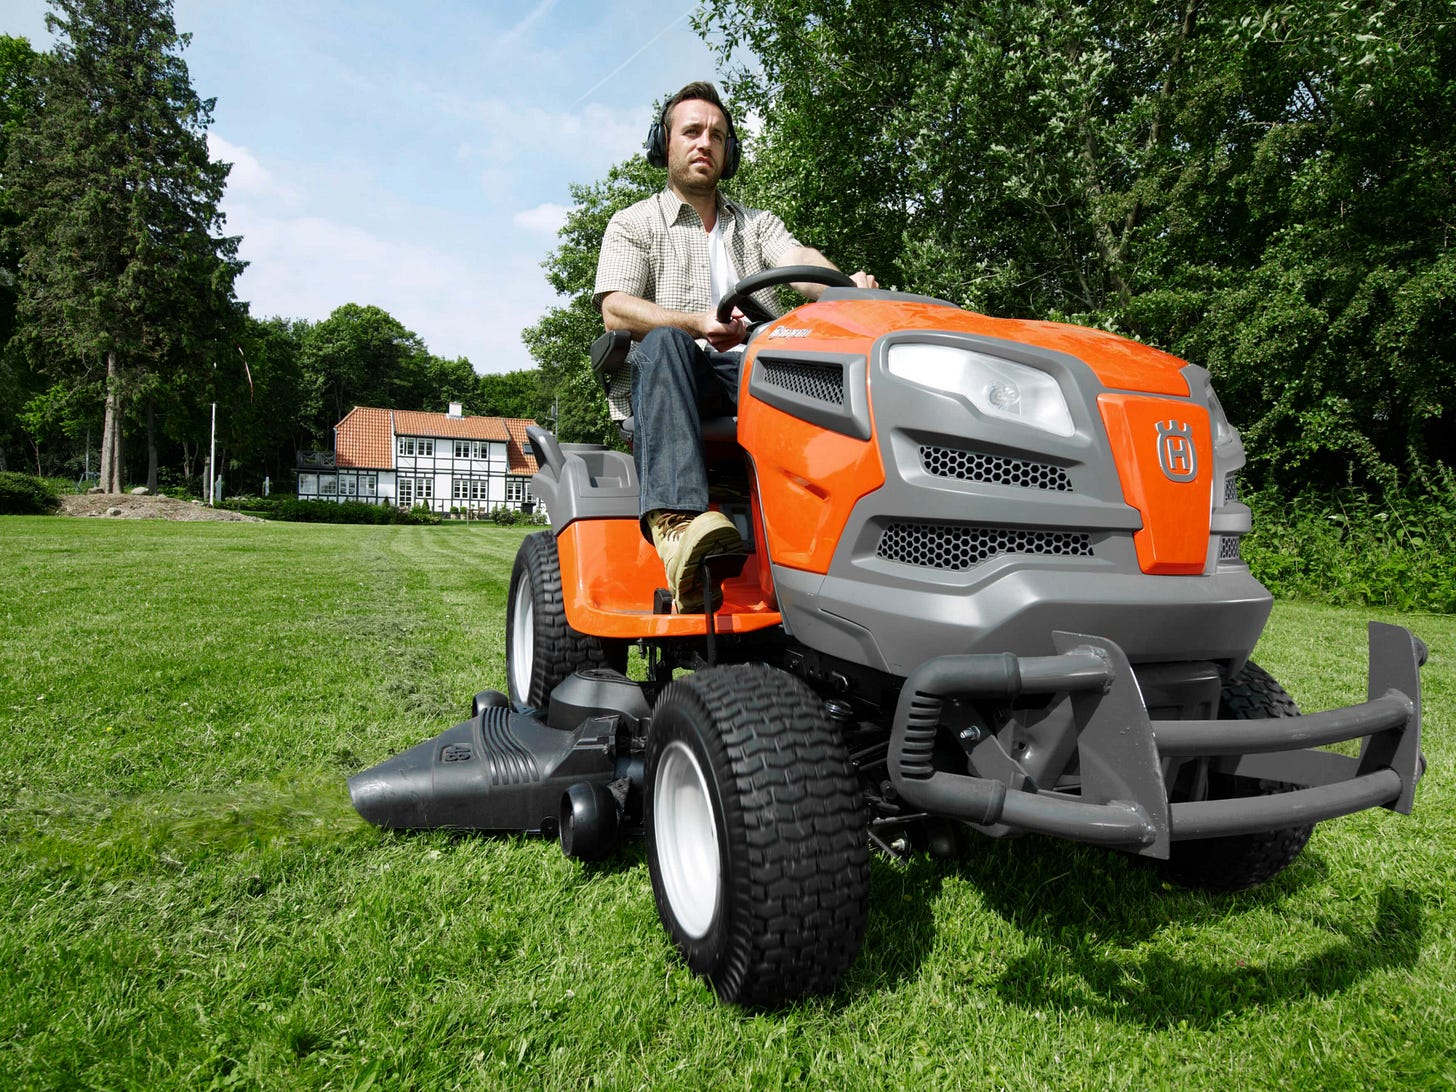 Husqvarna Riding Lawn Mower   Tips on buying the best ...